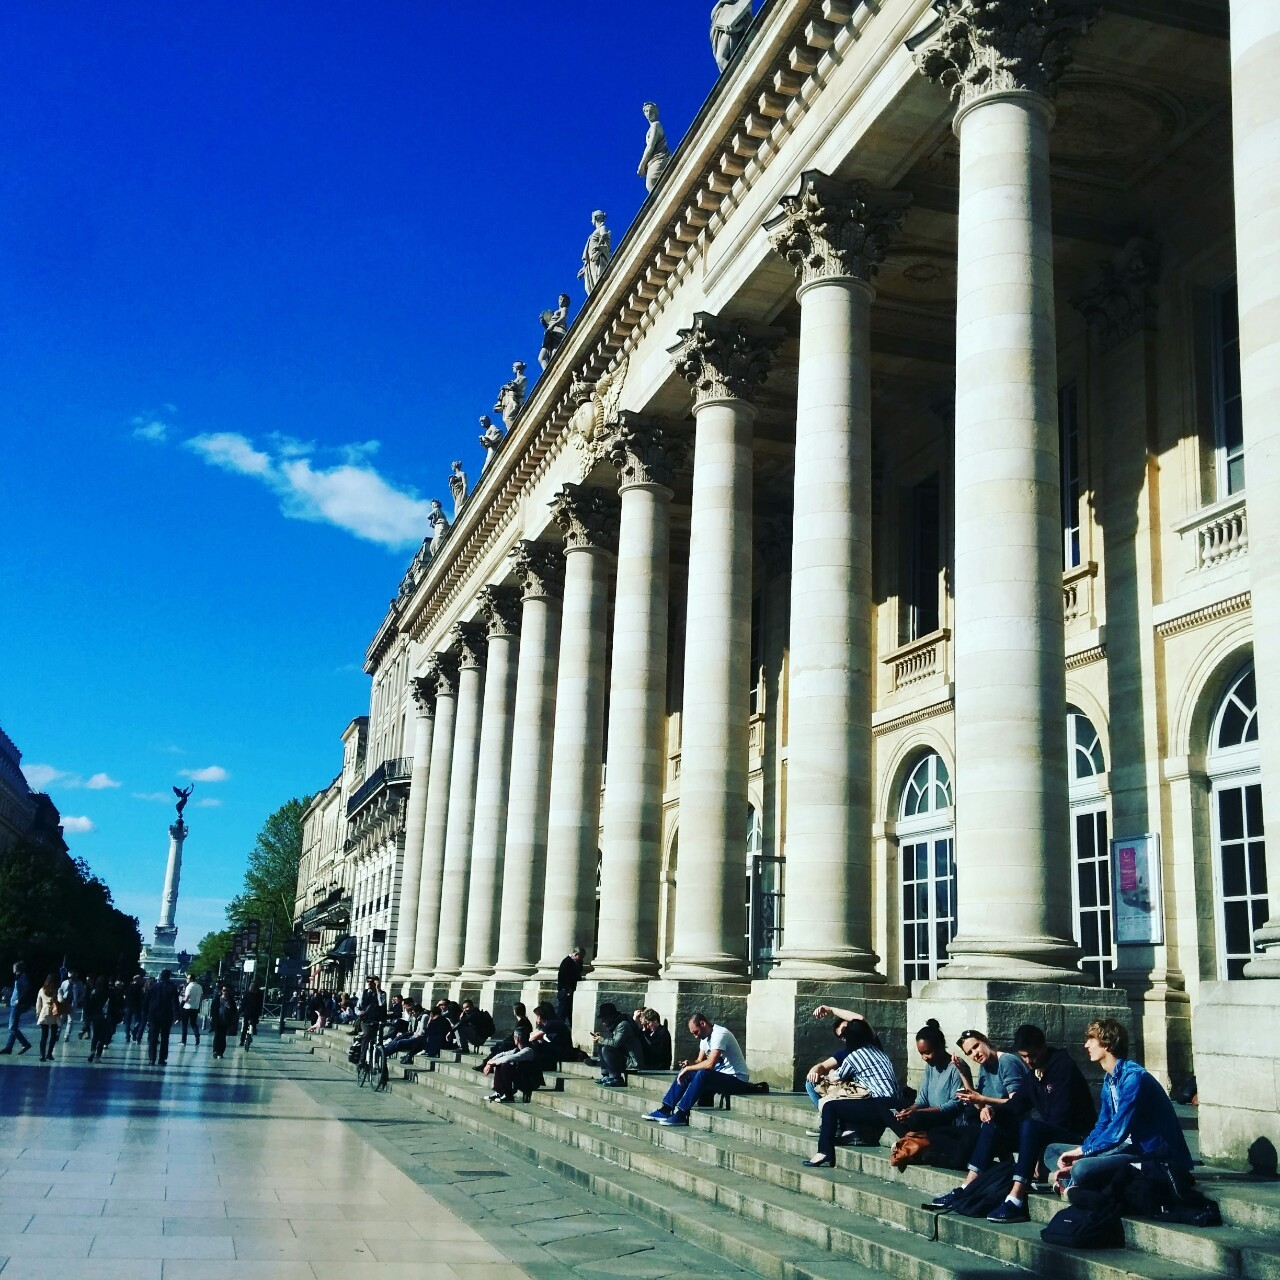 A shot of a building with large white columns in Bordeaux city center